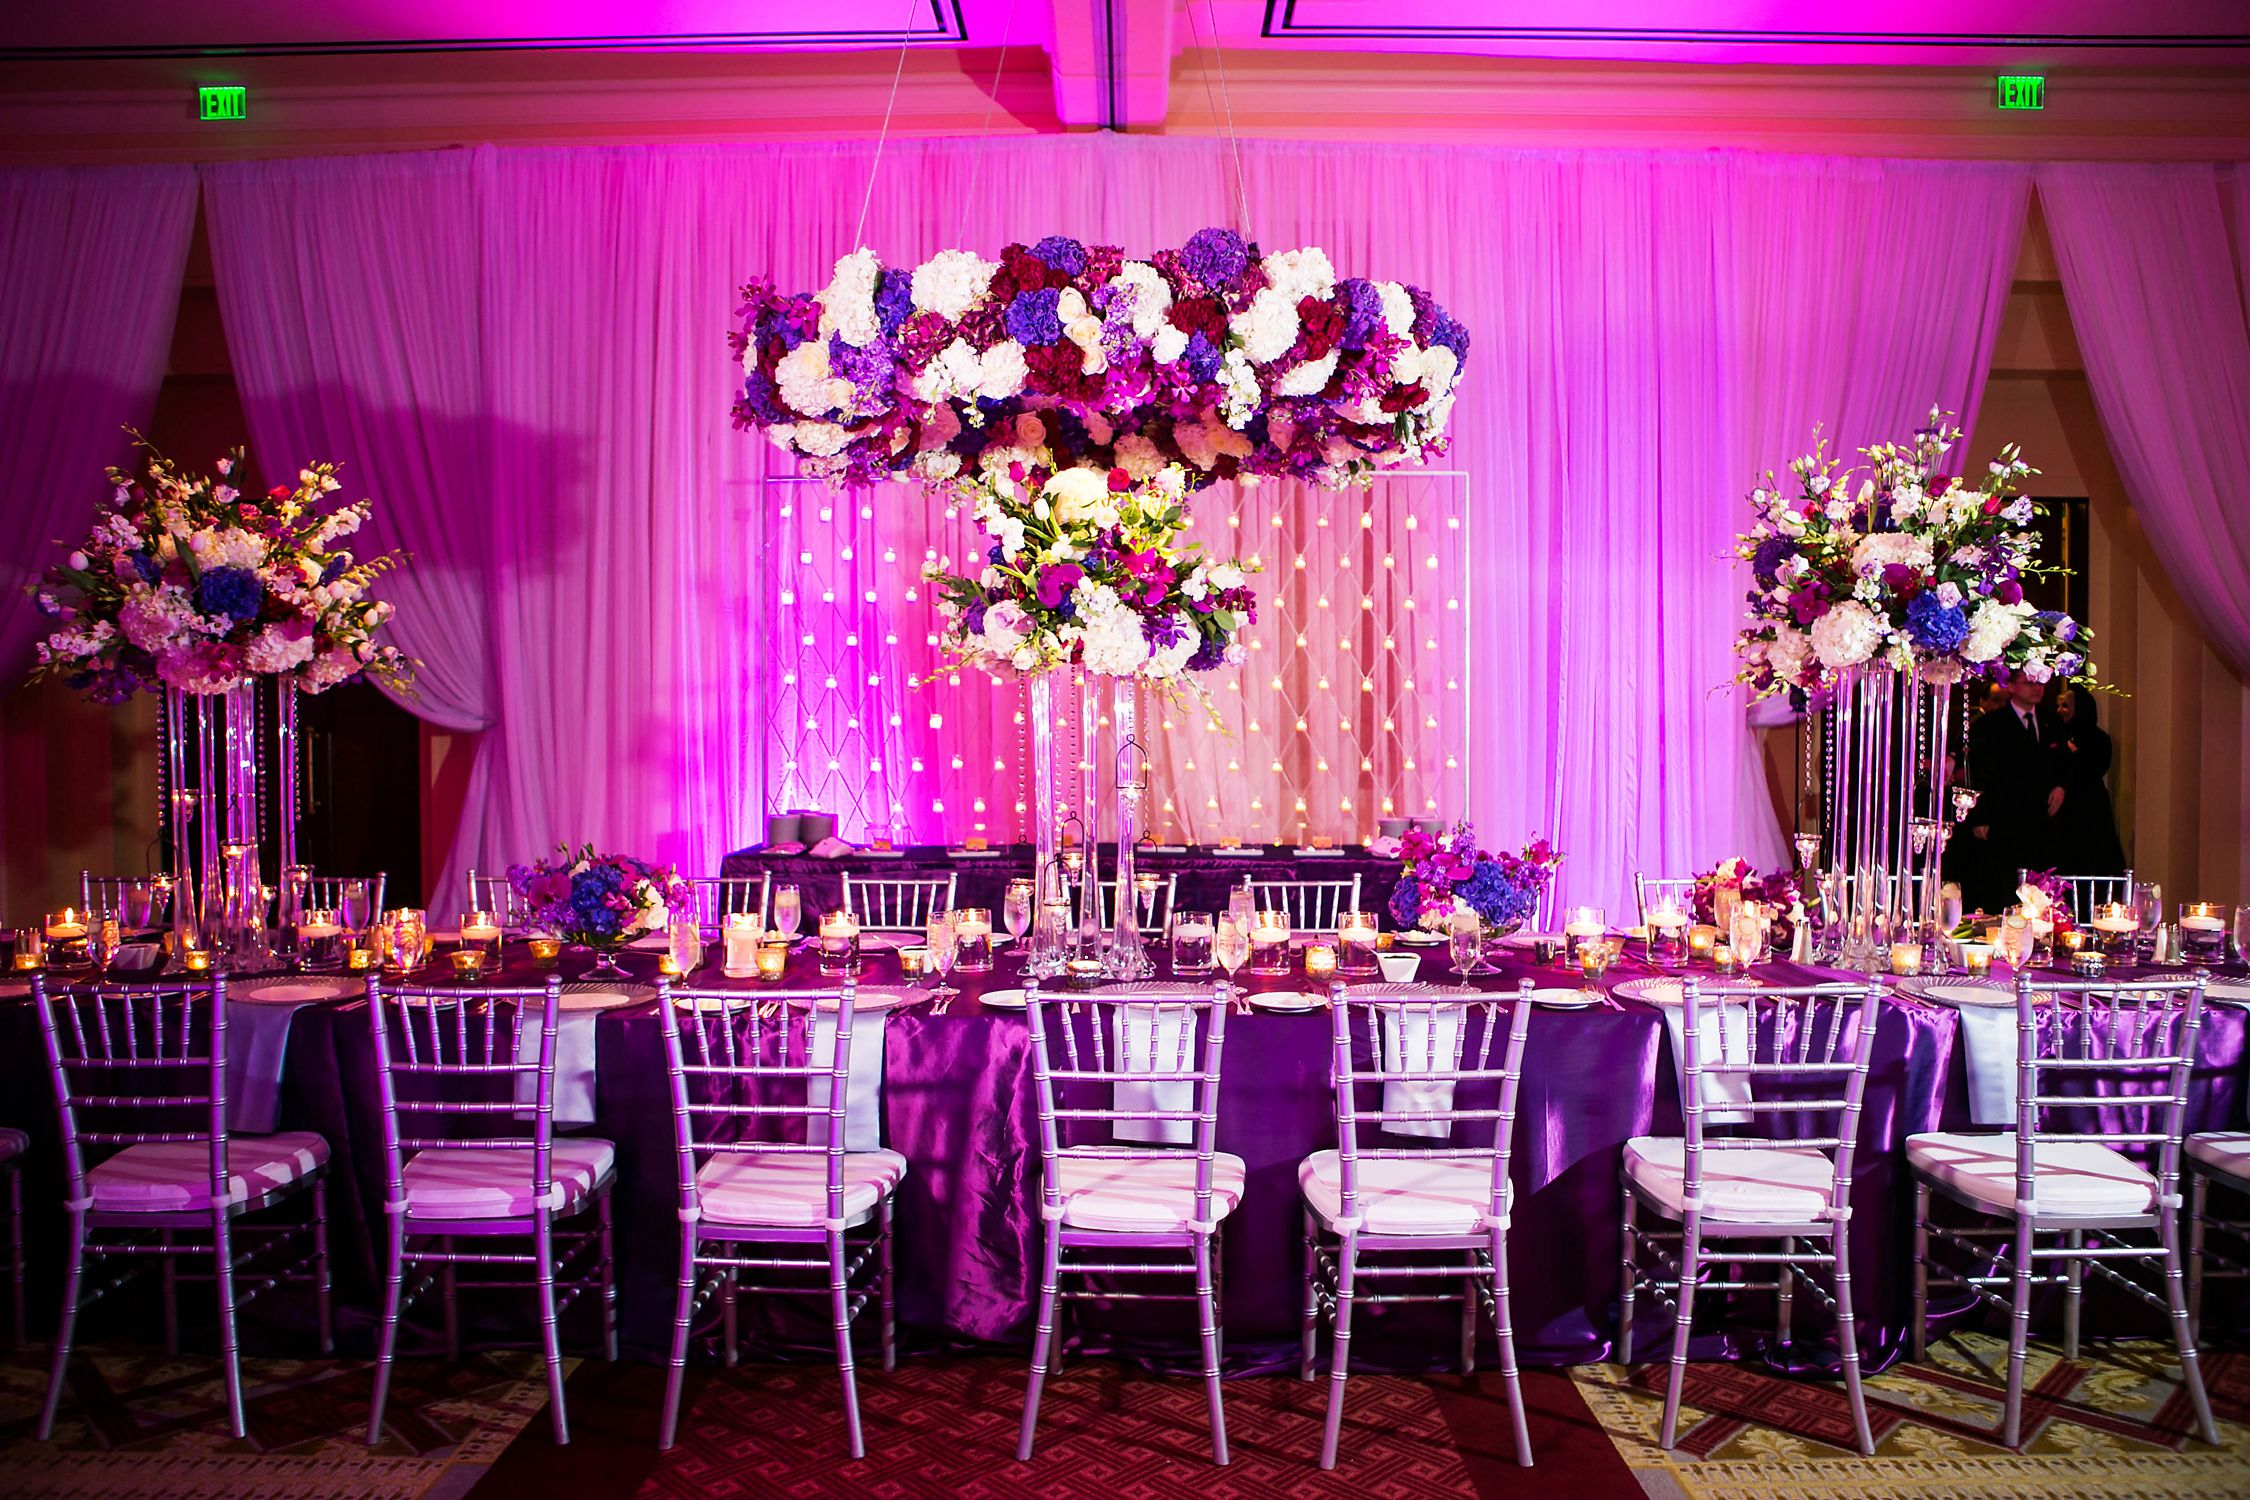 Festive indoor reception with tall centerpieces | Weddings & Events ...